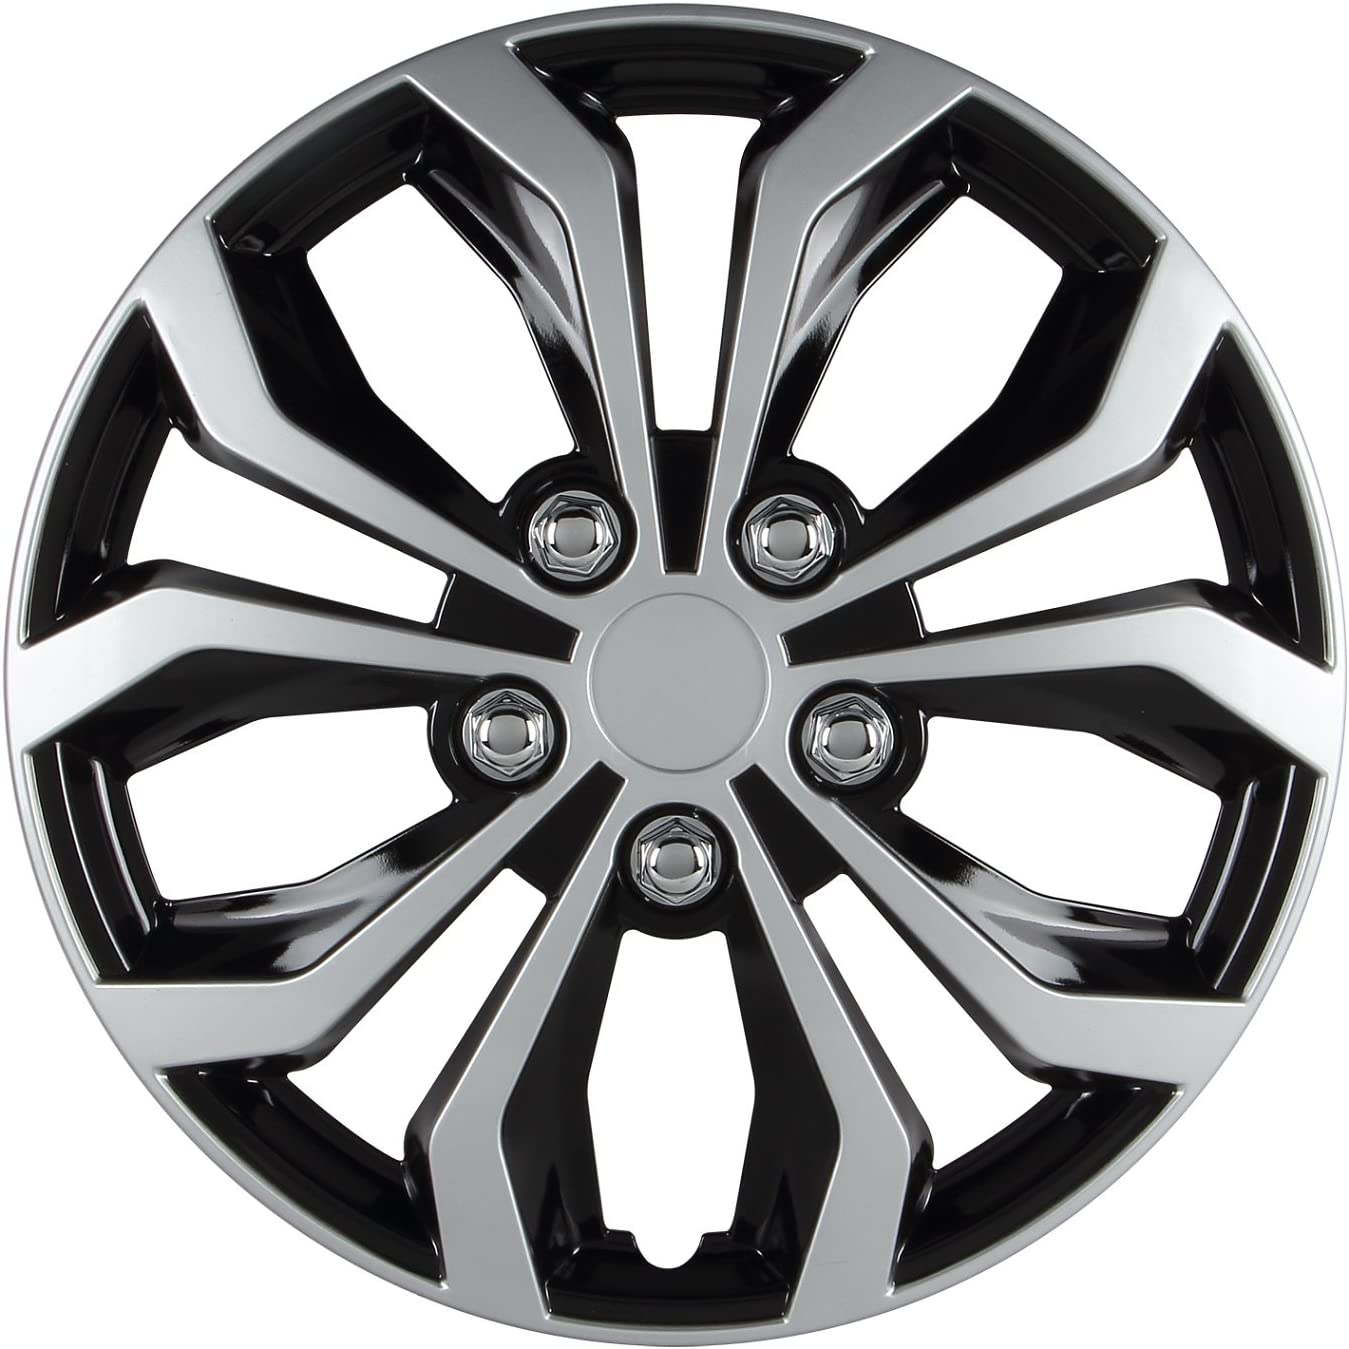 Pilot Automotive Universal Fit Spyder Wheel Cover